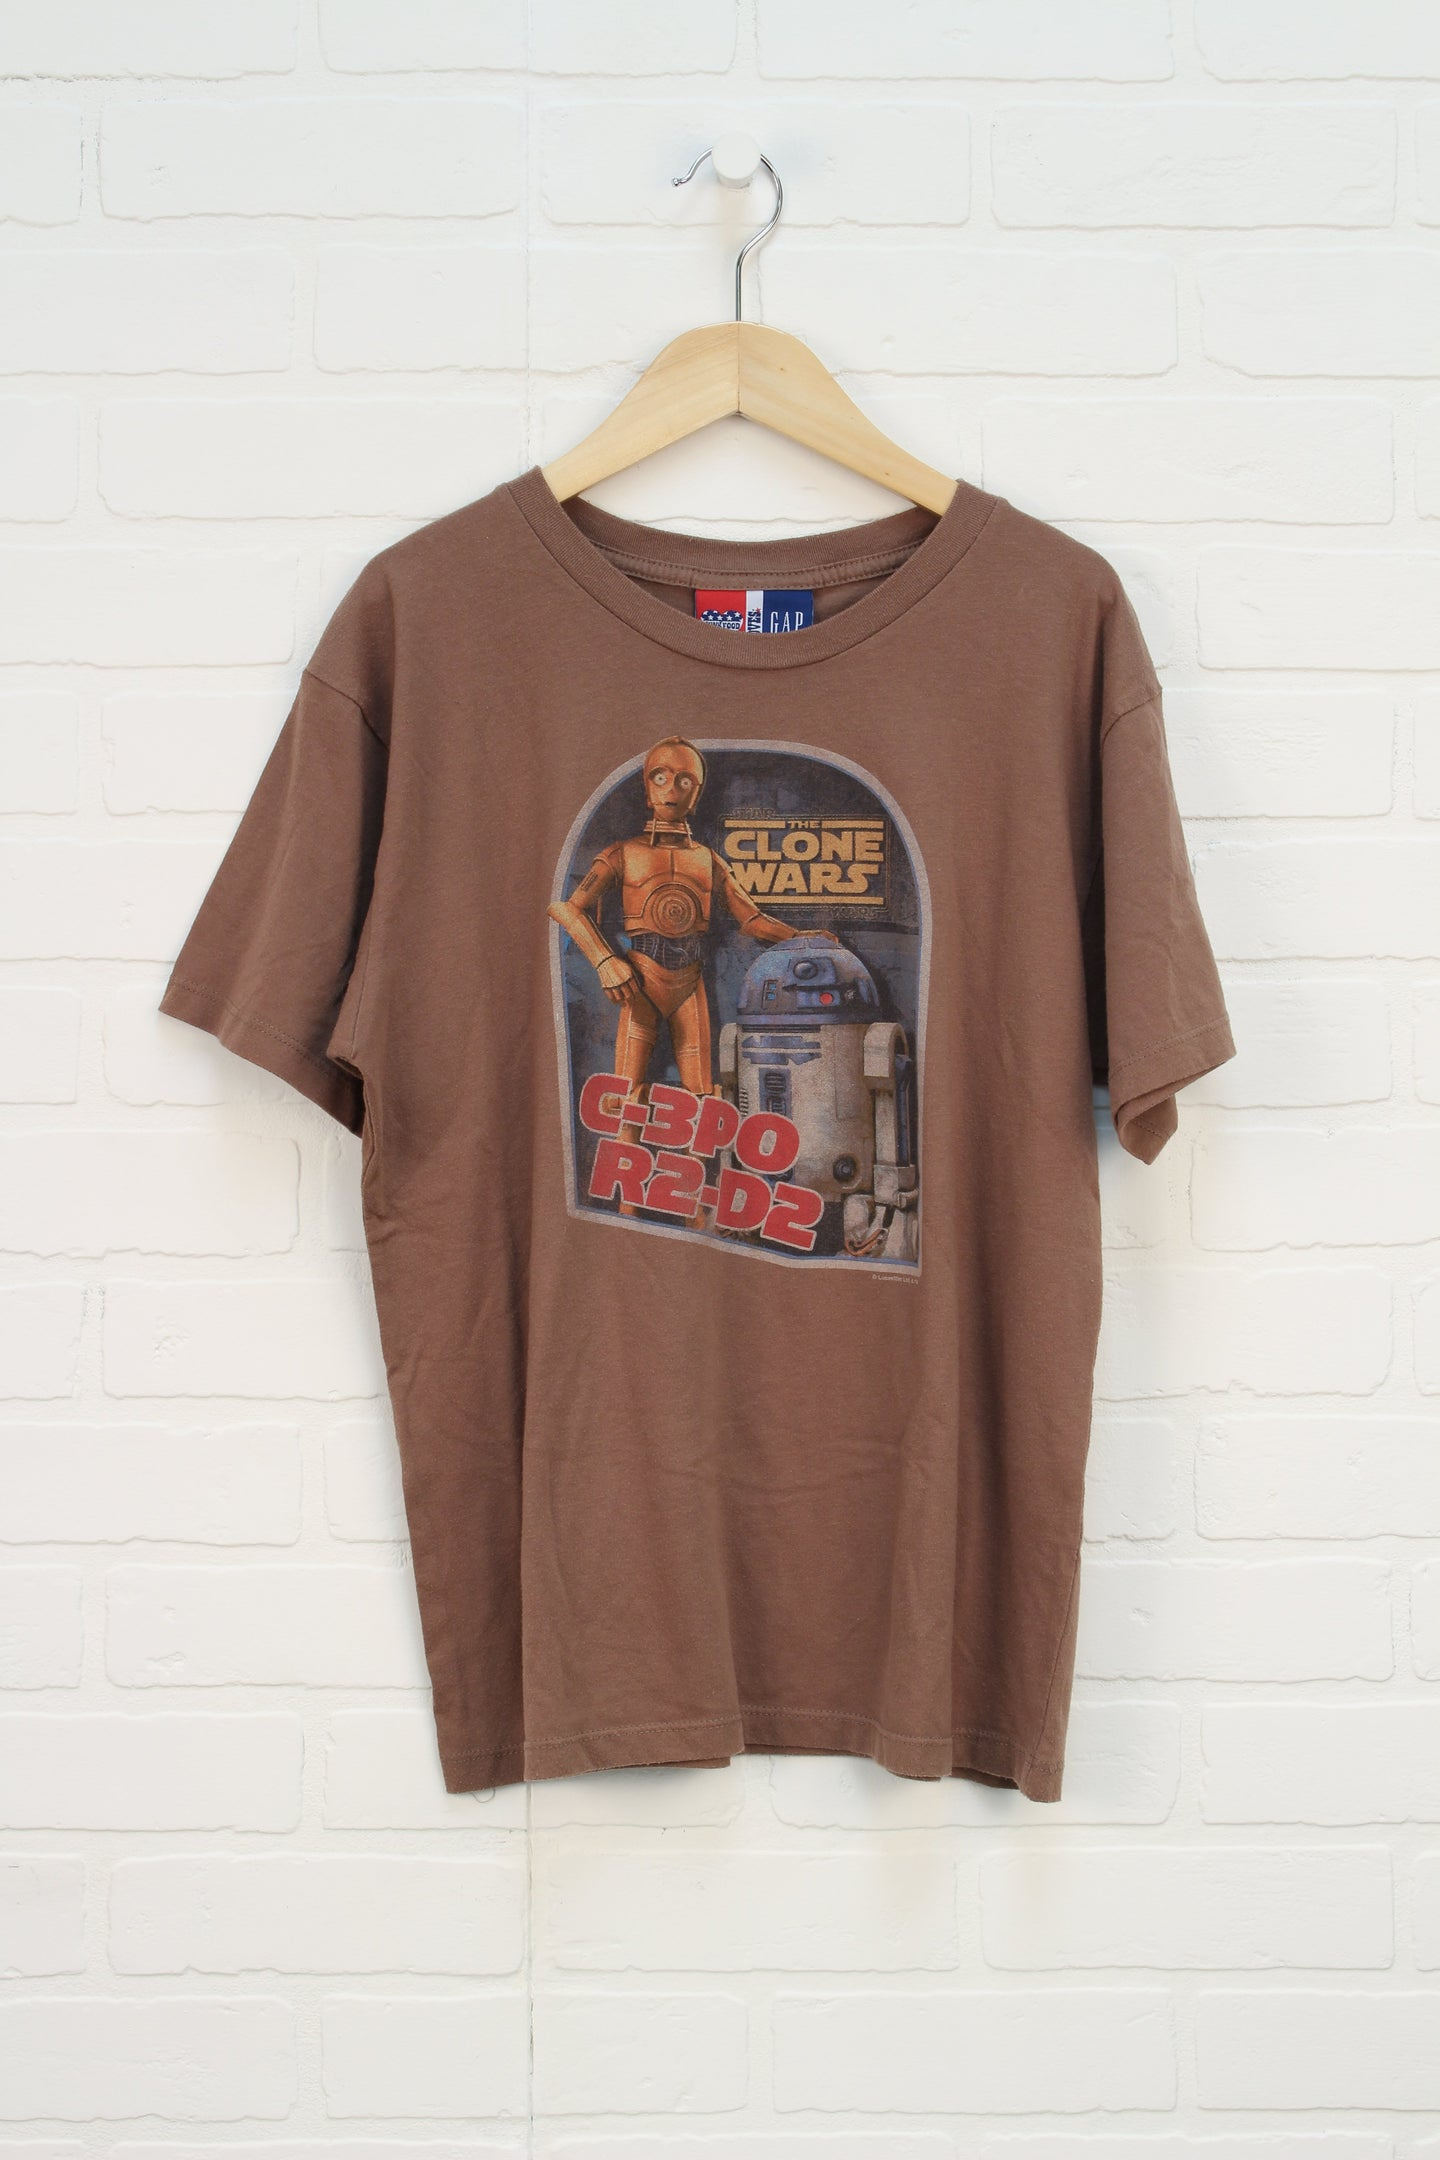 Brown Graphic T-Shirt: Clone Wars (Size XXL/14-16)